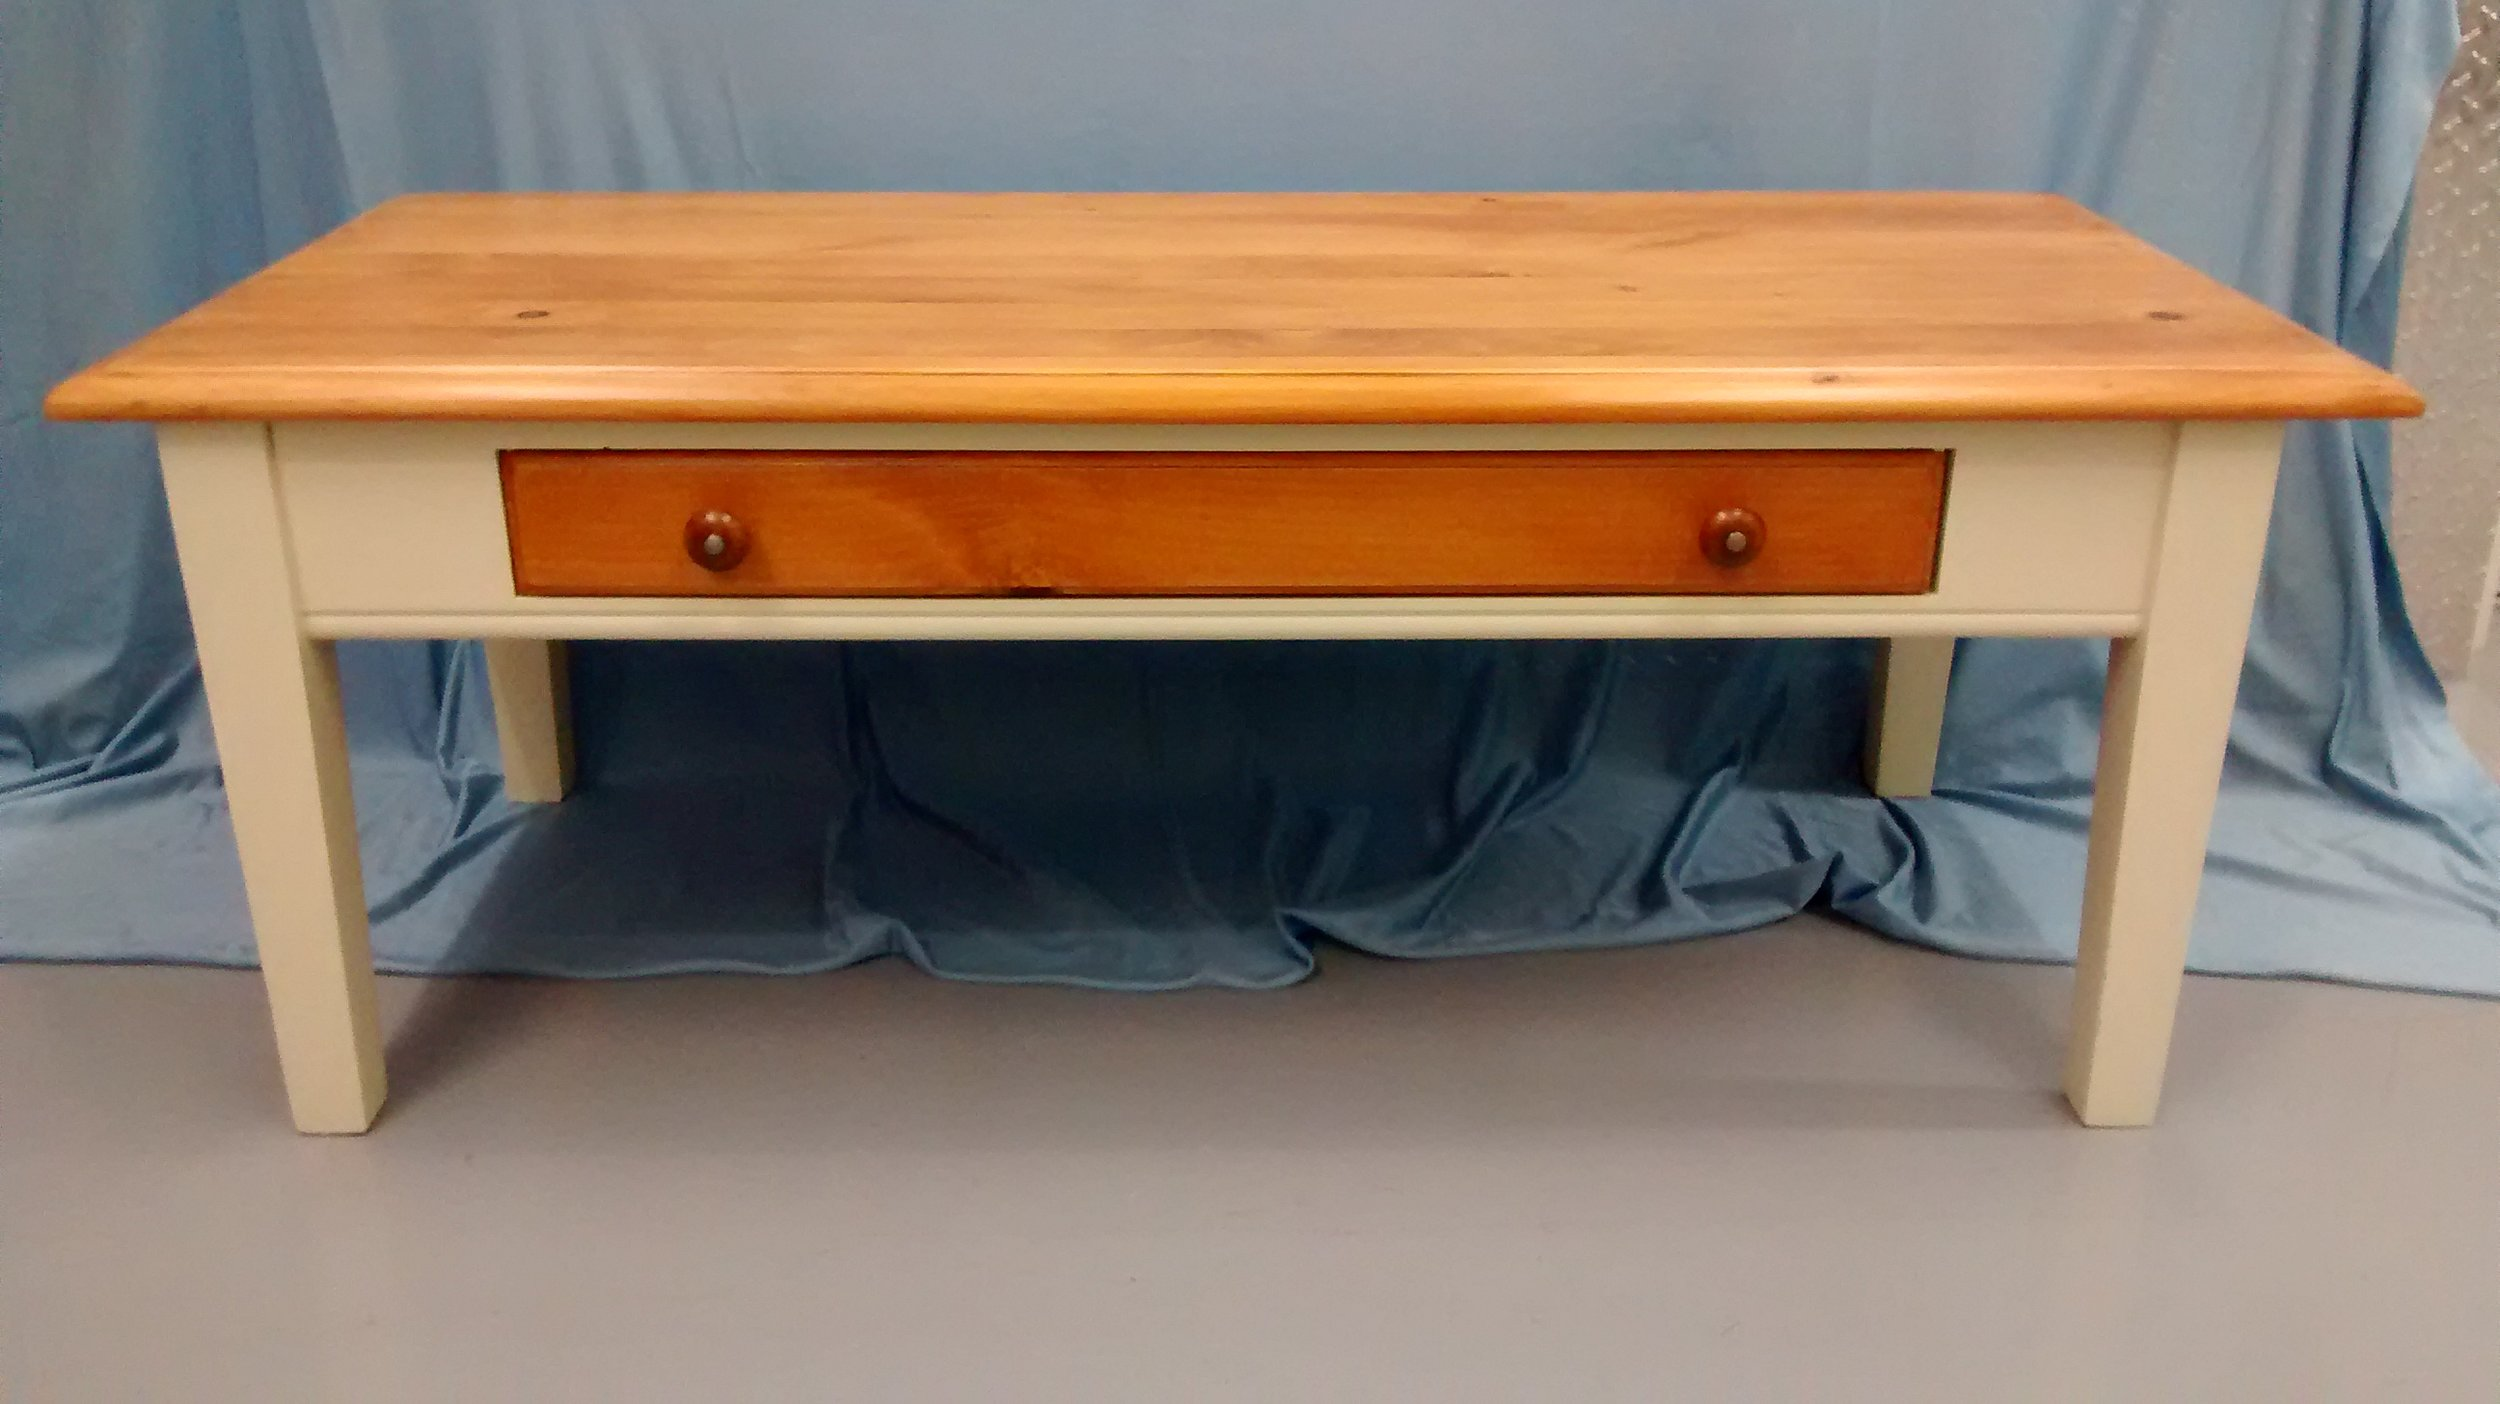 Wooden Coffee Table with Drawer and Painted Legs